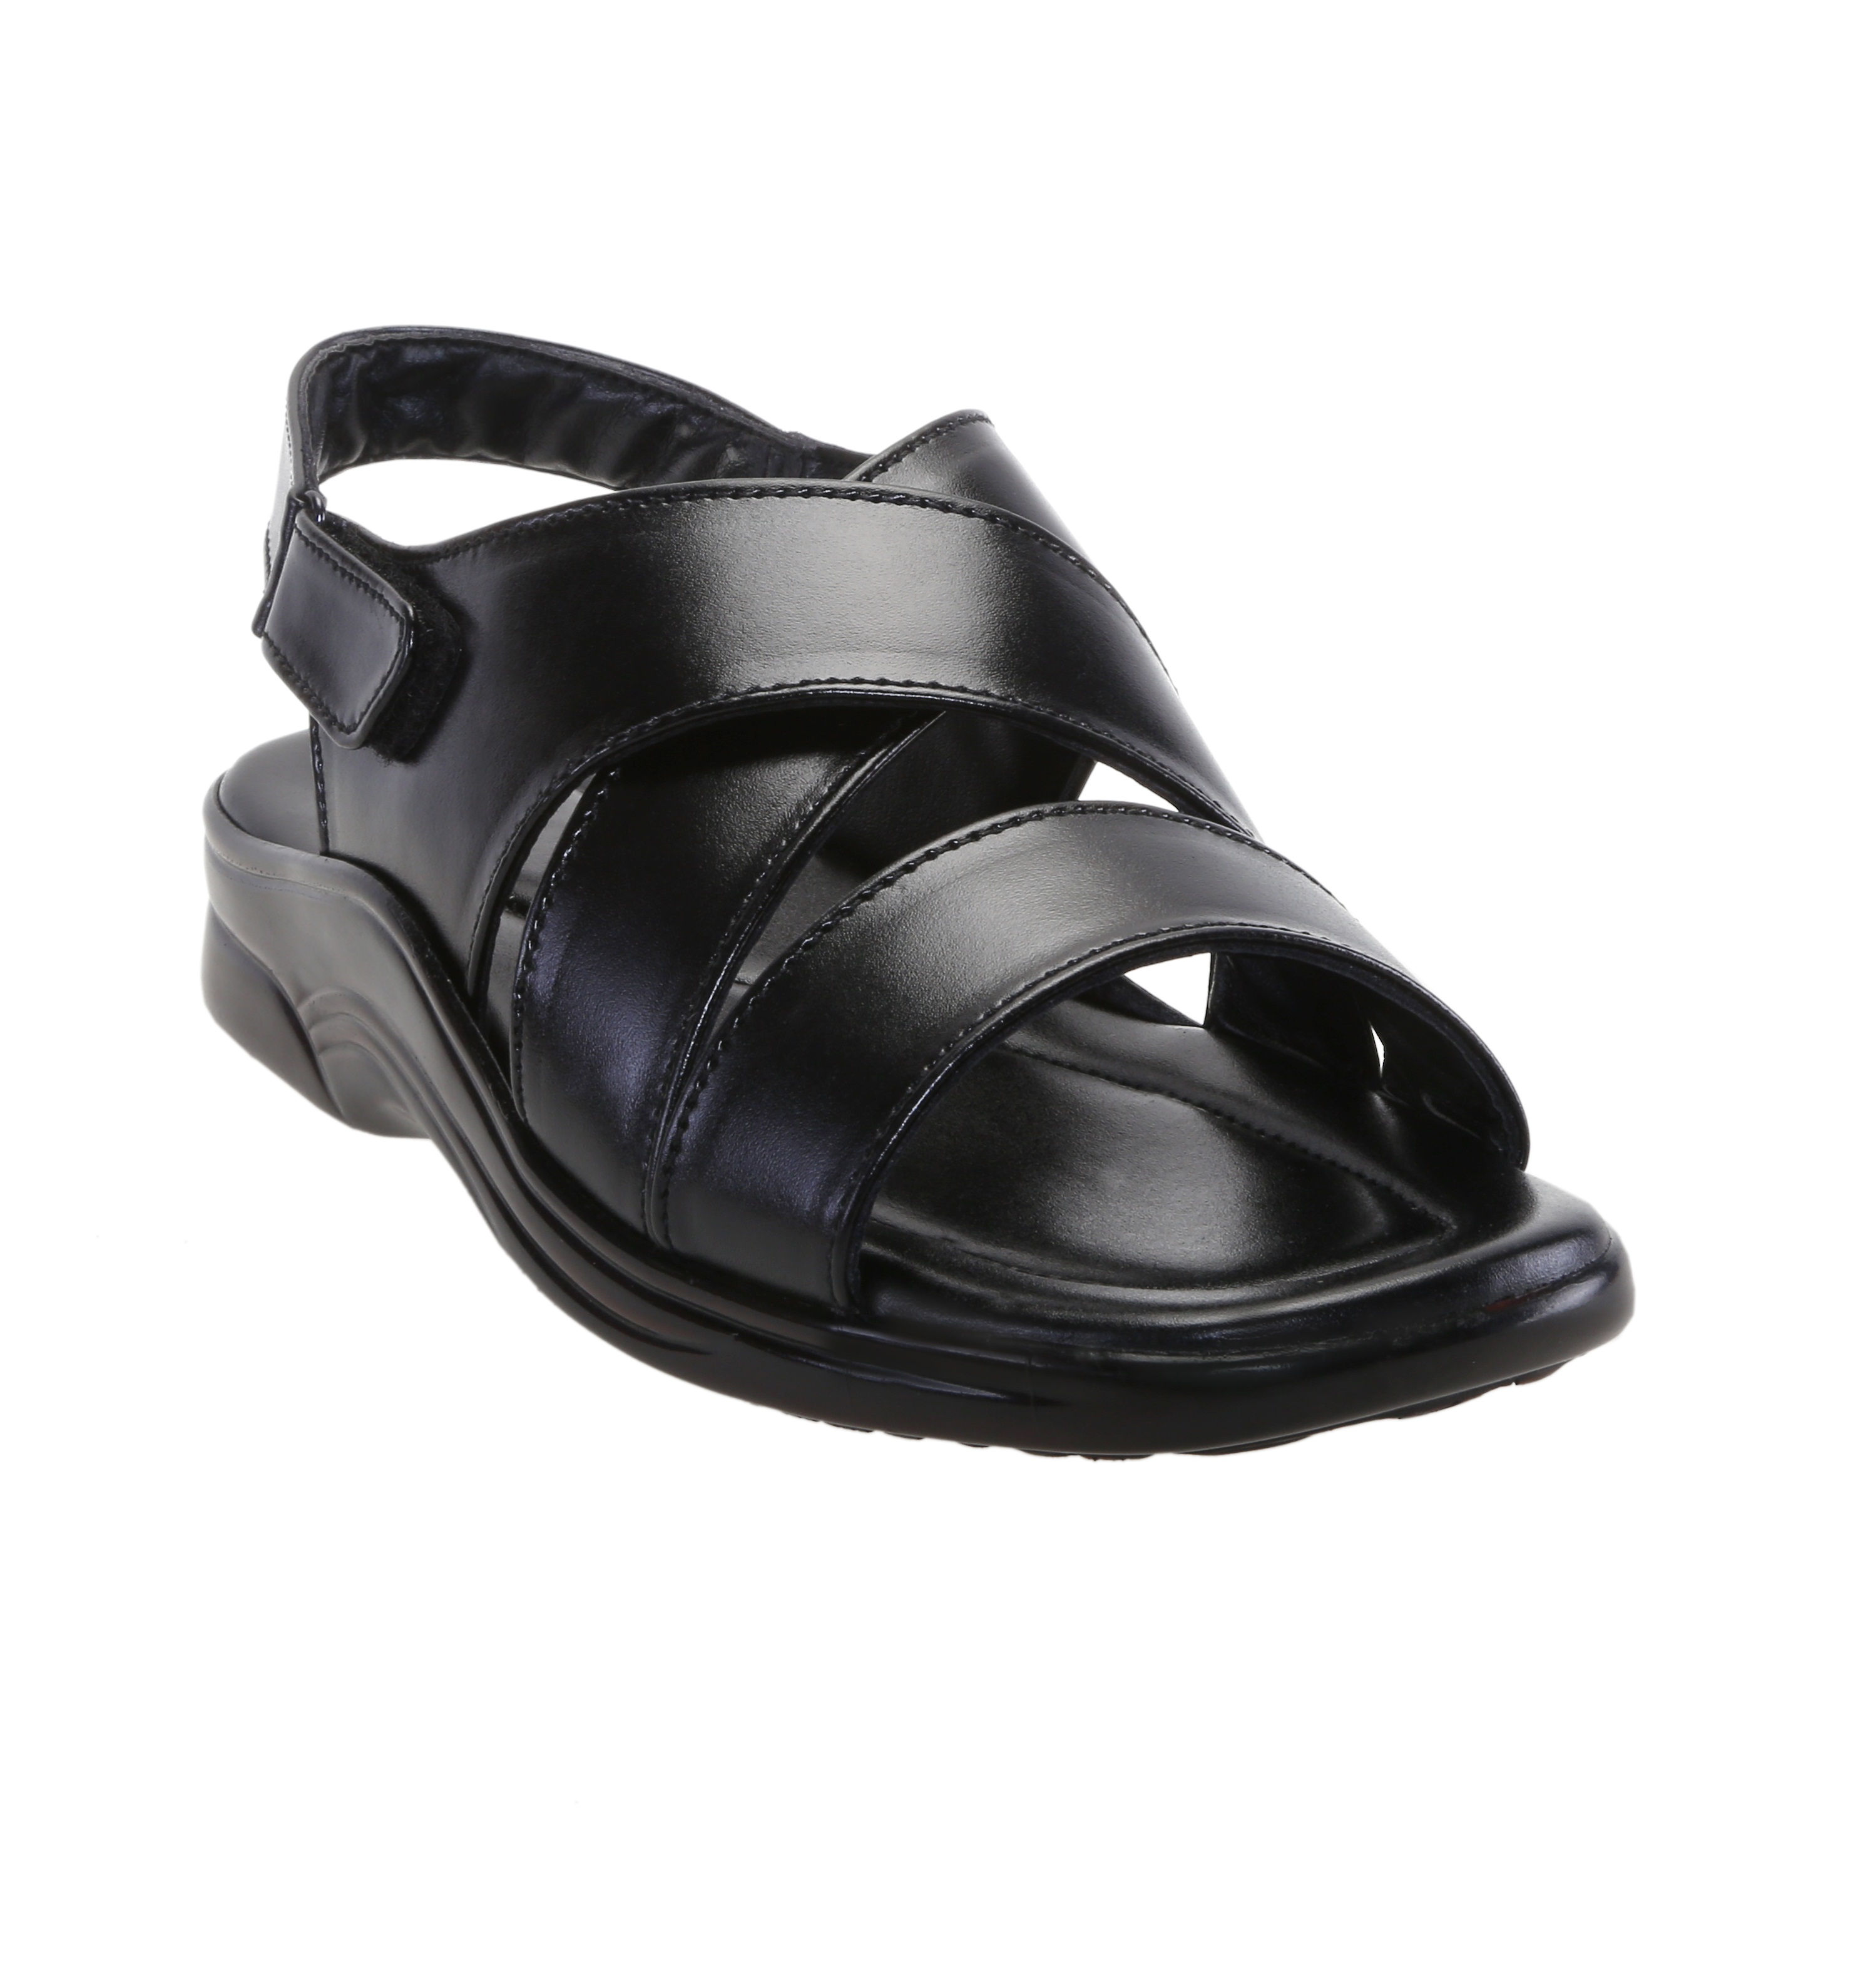 Zappy Men's Black Buckle Sandals at shopclues